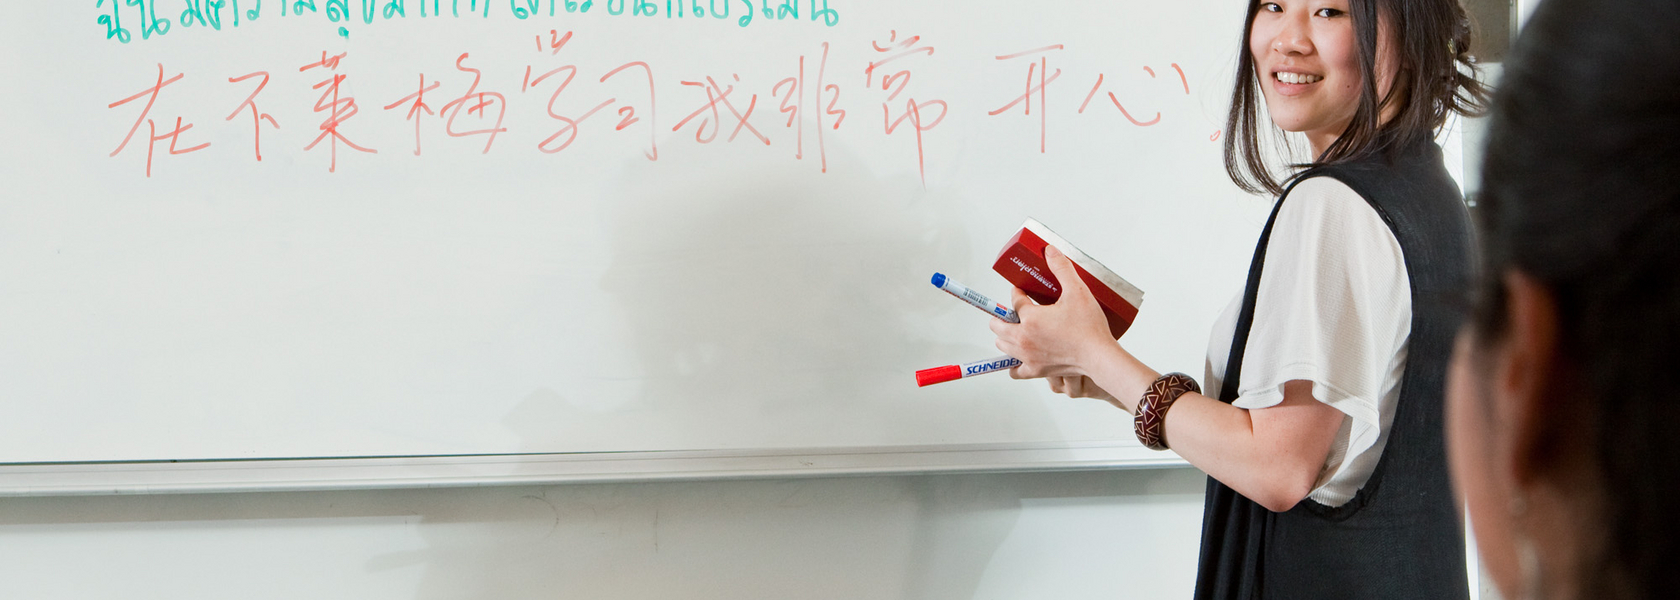 A person writes in different languages on a whiteboard.